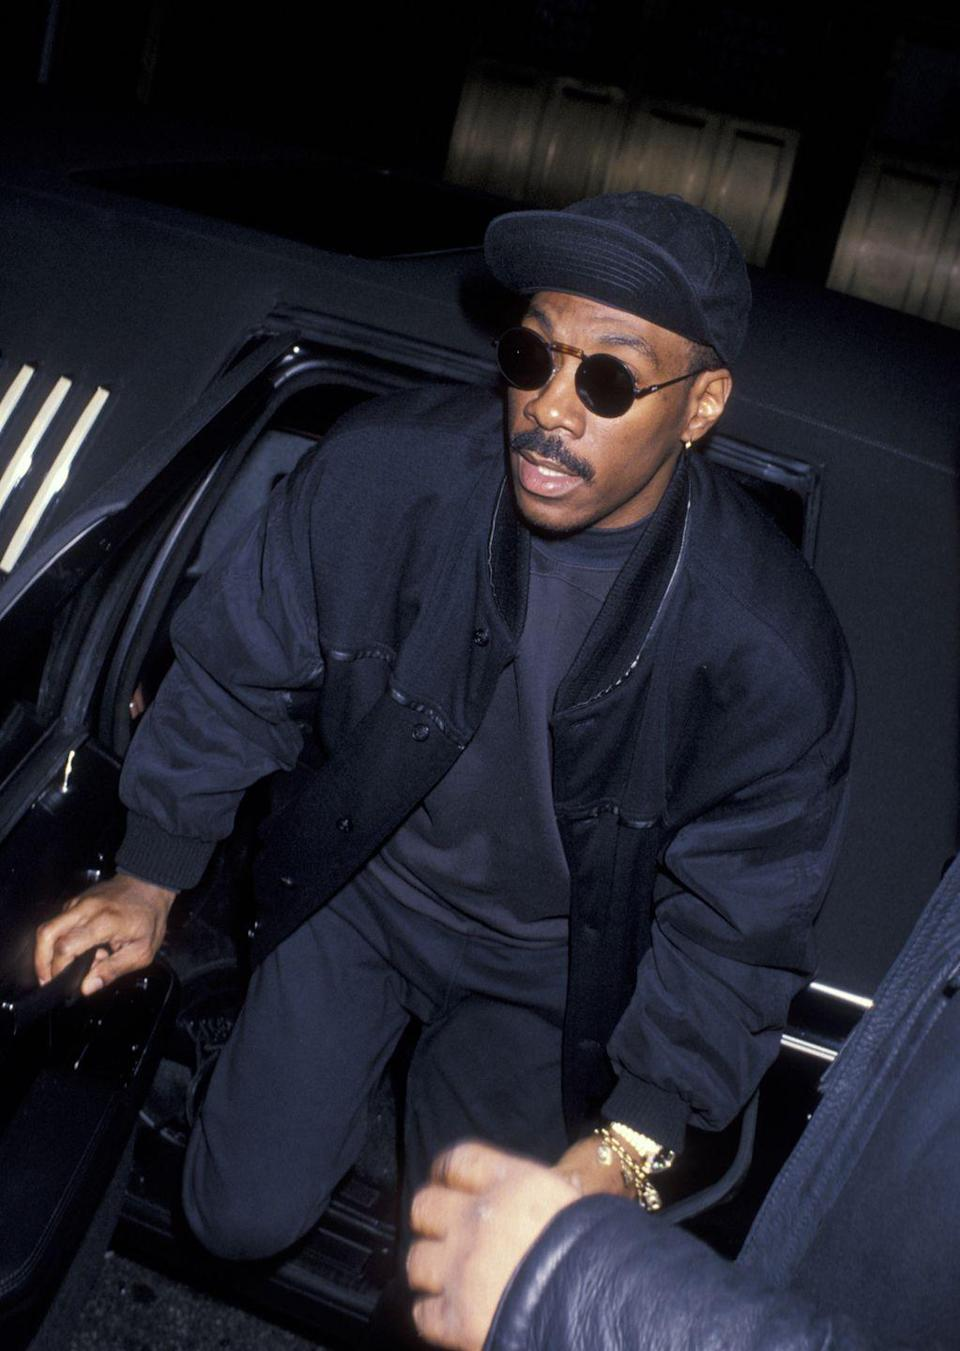 <p>Eddie Murphy emerges from a limousine, dressed in an all-black outfit, for a <em>Saturday Night Live </em>after-party. The comedian was a cast member on the sketch comedy show from 1980 until 1984, and his career skyrocketed afterward. </p>